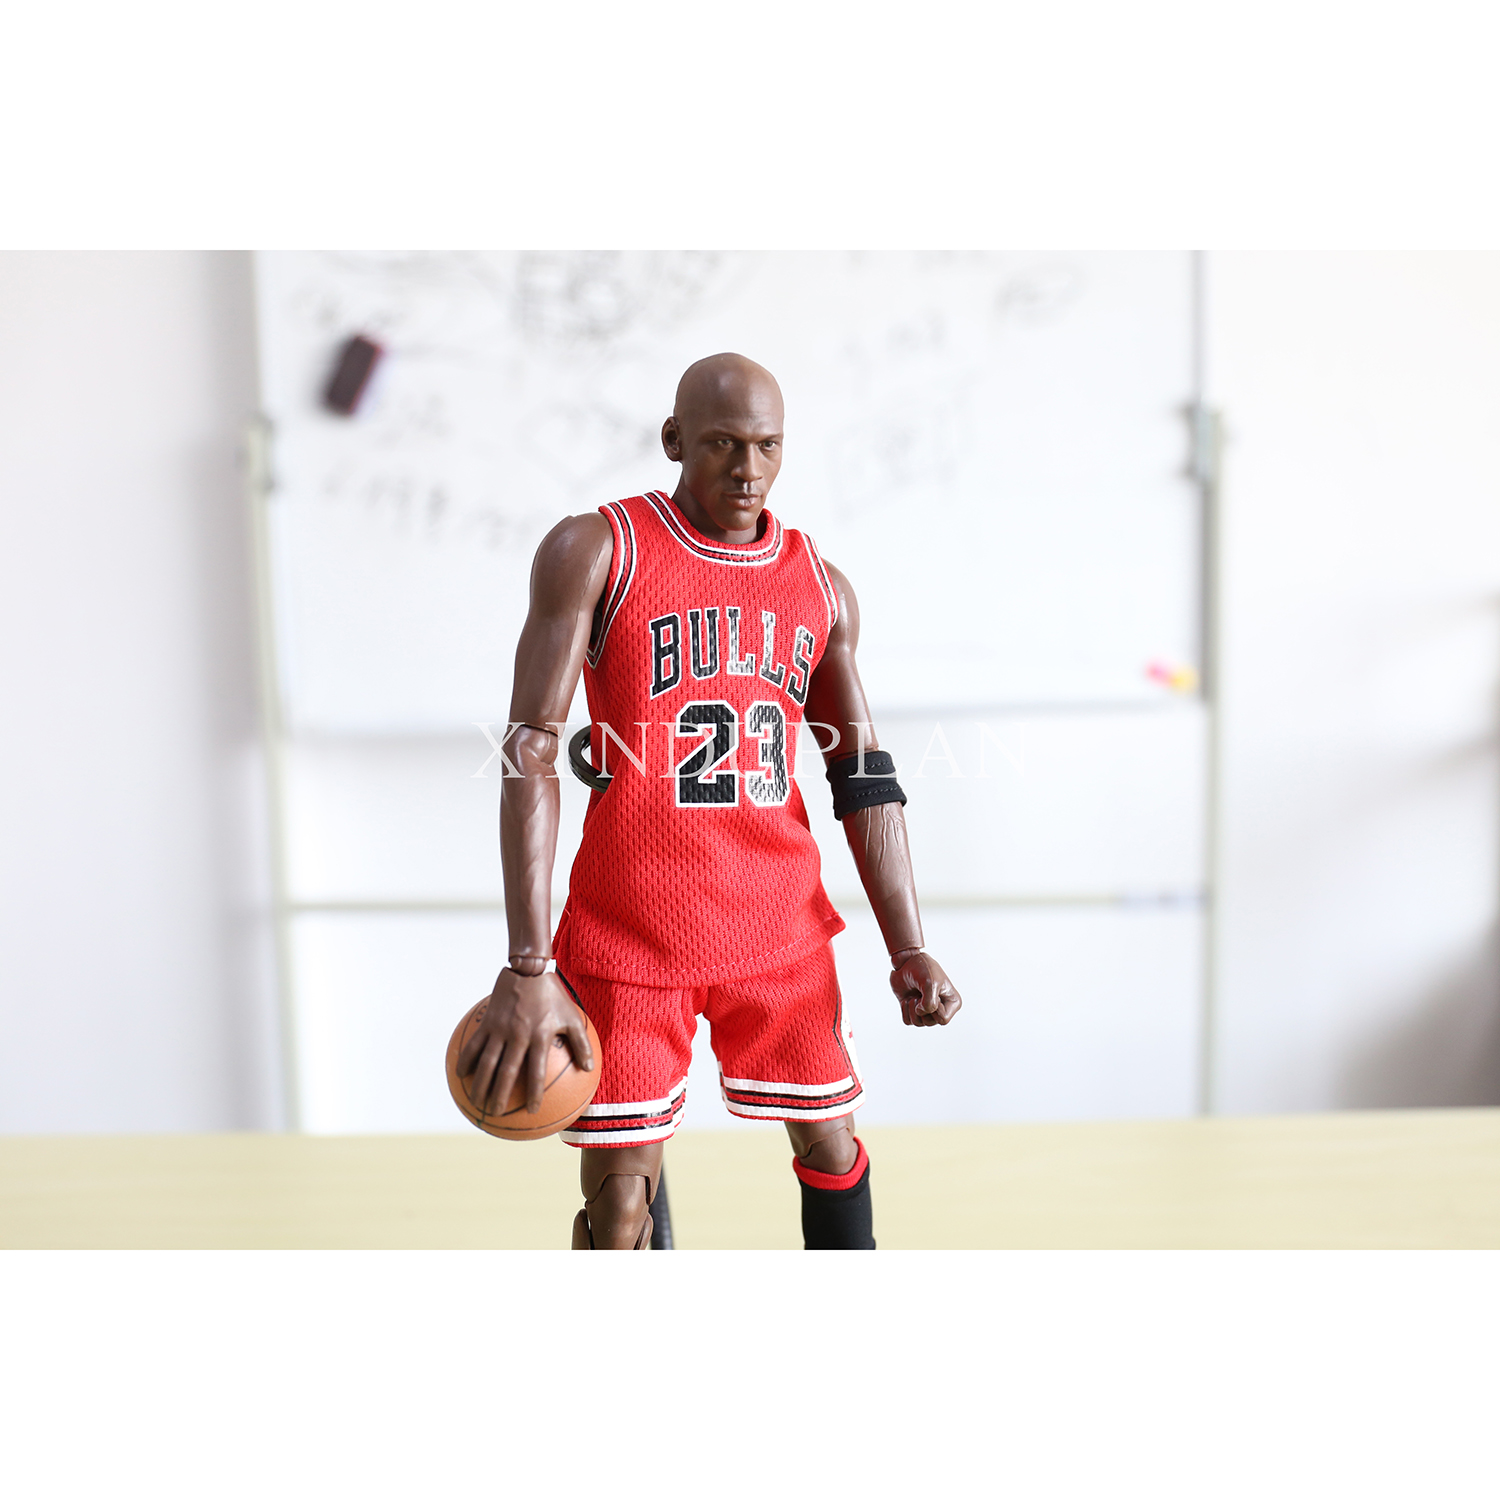 decffbdd311ae4 XINDUPLAN Michael Jordan 23 NBA Chicago BULLS 23 Action Figure Toys 1 6  34cm Large PVC Gift Collect Model 1053-in Action   Toy Figures from Toys    Hobbies ...